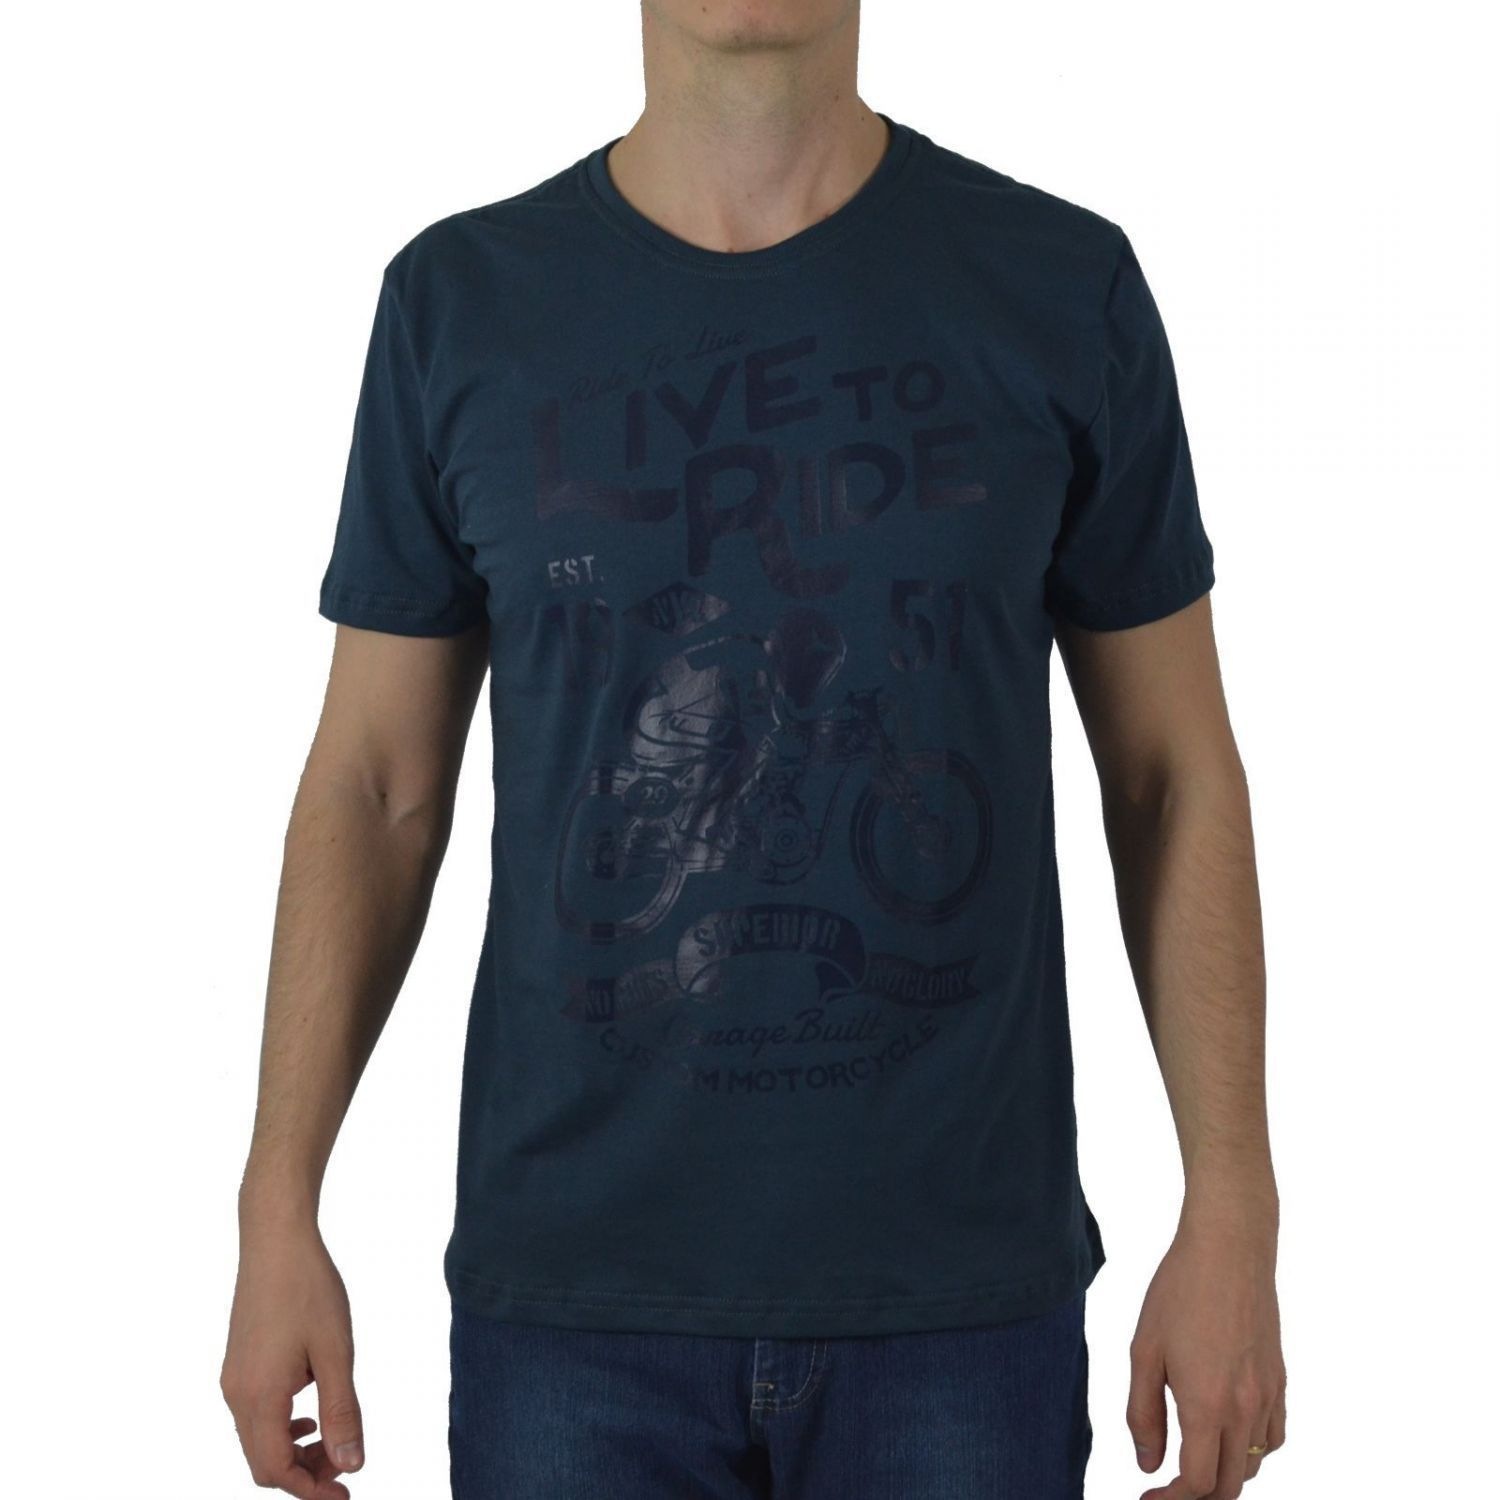 Camiseta Masculina Fallon & Co. Live to Ride Chumbo